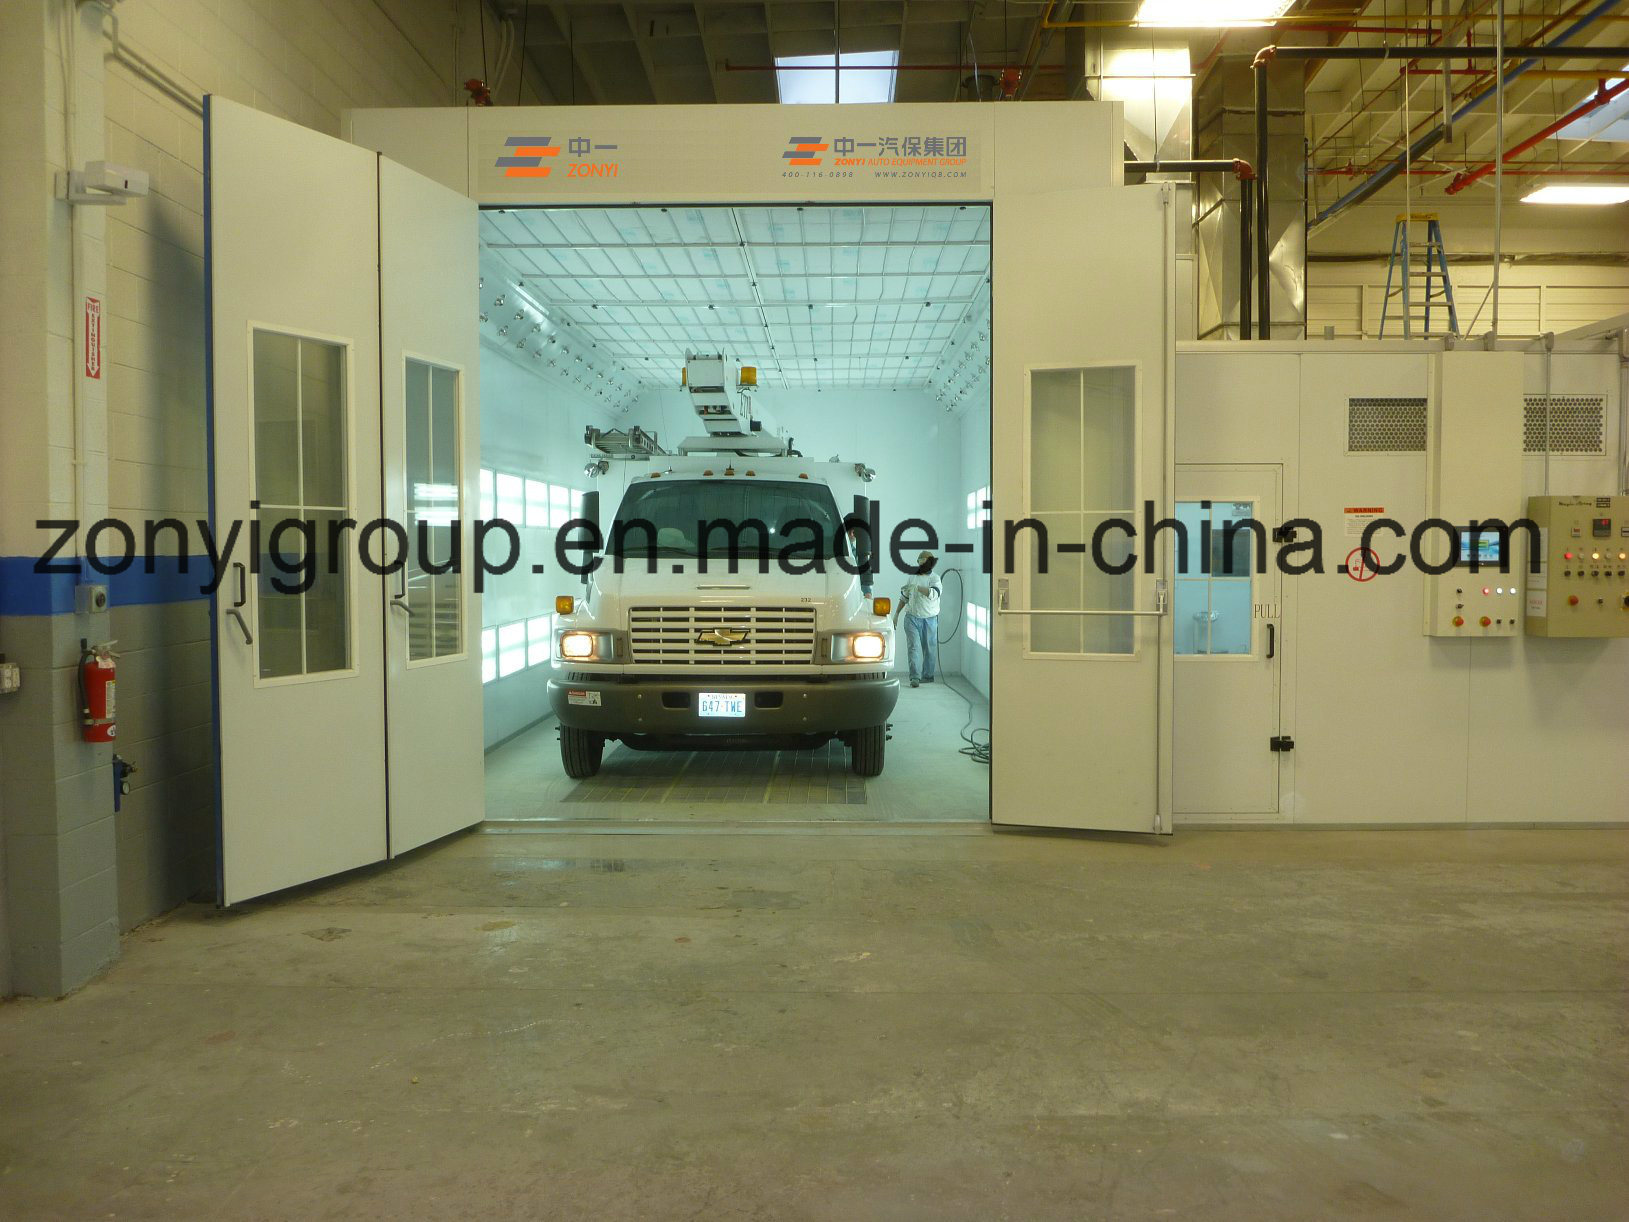 Spray Booth Factory Spray Booth Manufacture Painting Booth